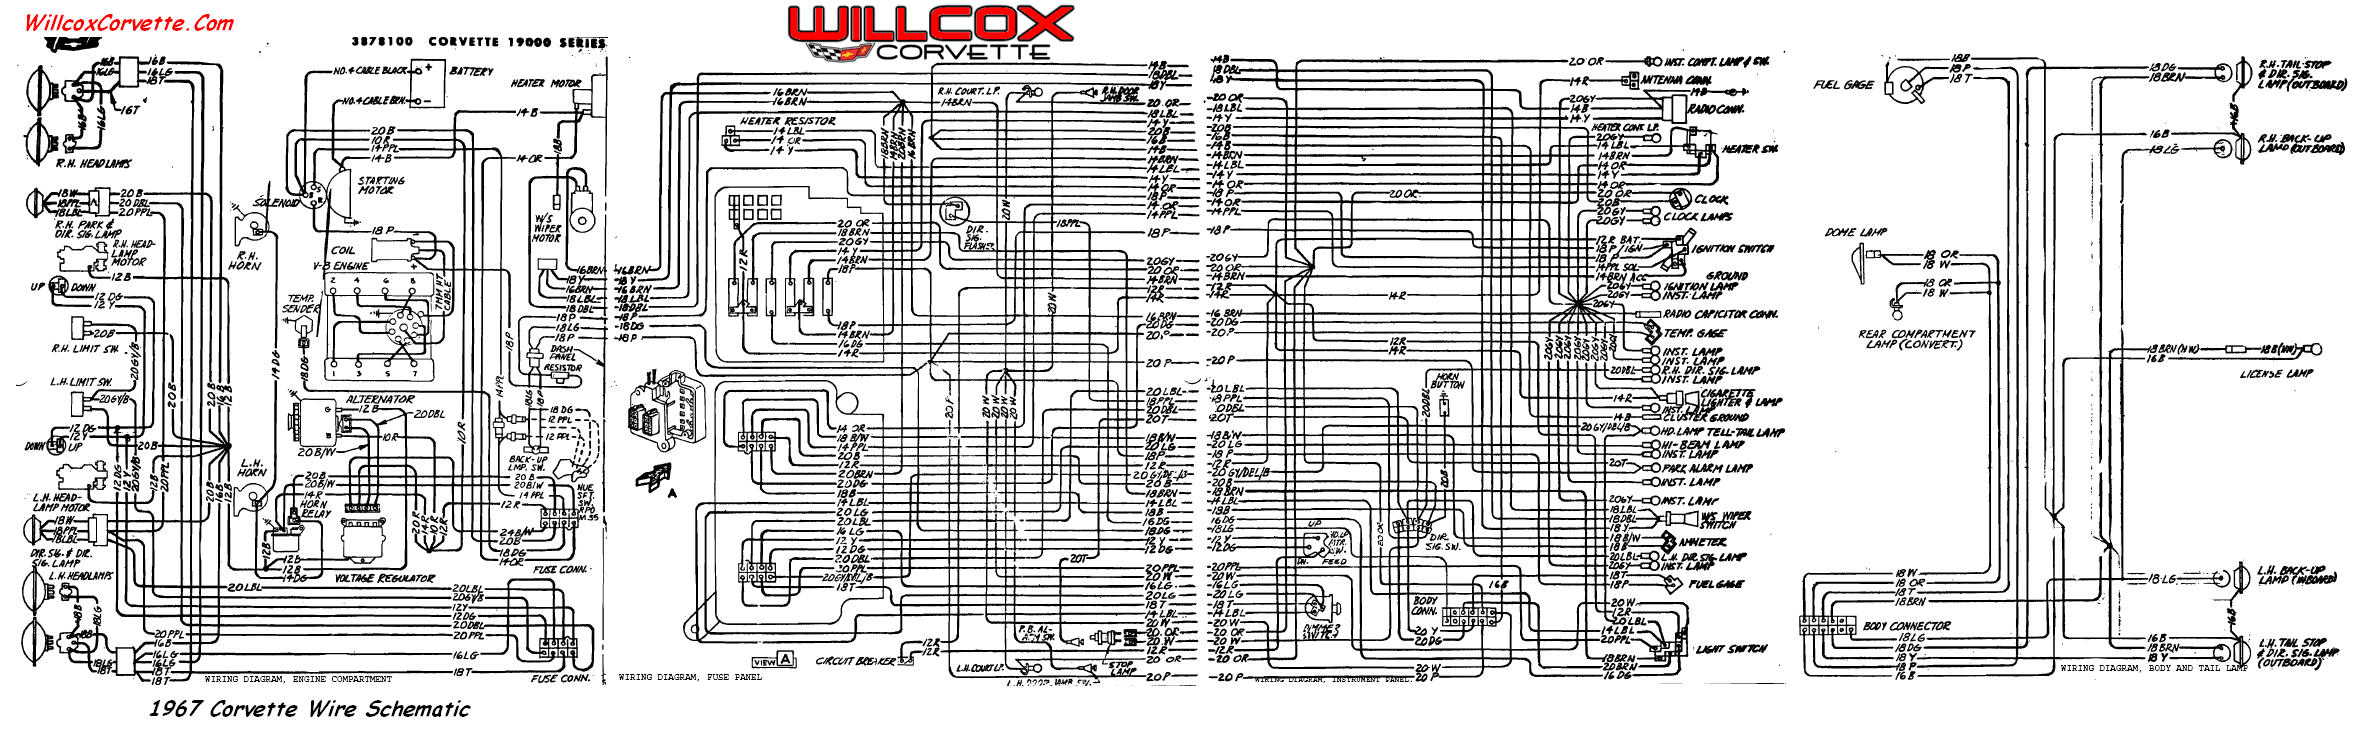 1967 Corvette Wiring Diagram Tracer Schematic Willcox And